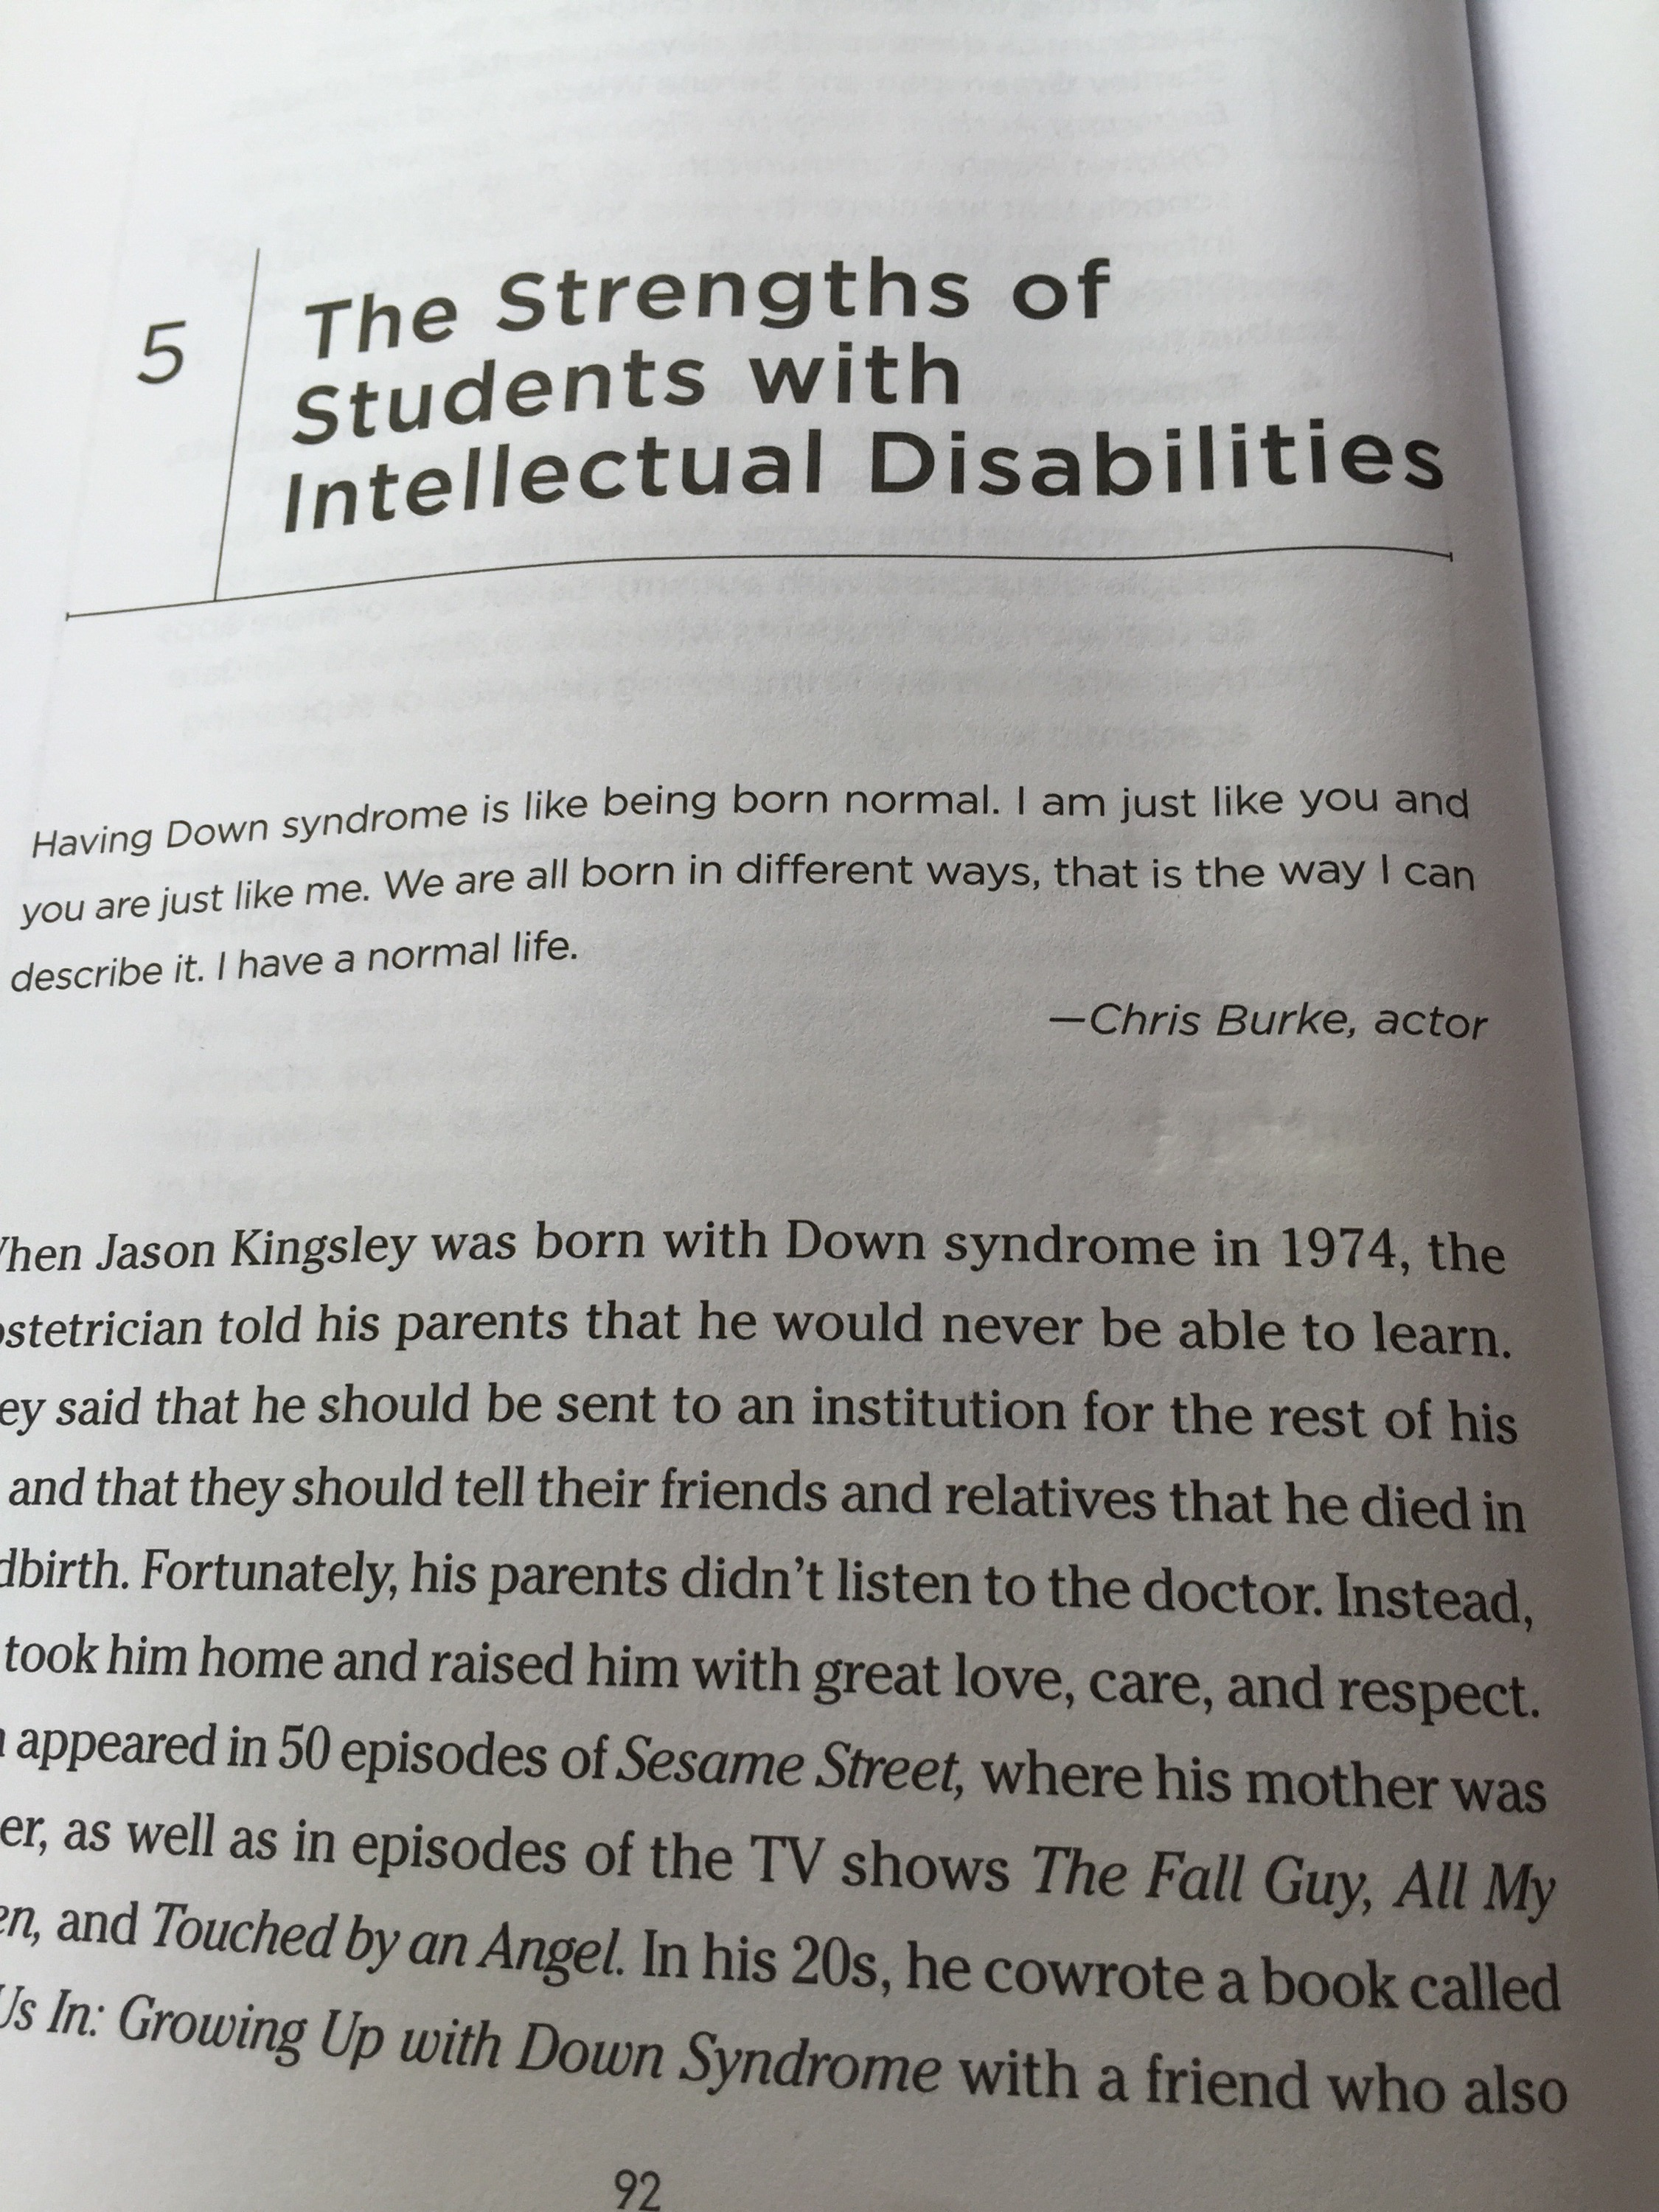 kiat book club neurodiversity in the classroom ch 5 katie is a i have had the pleasure of working a few adults down syndrome through university and already know quite a bit about their strengths and other